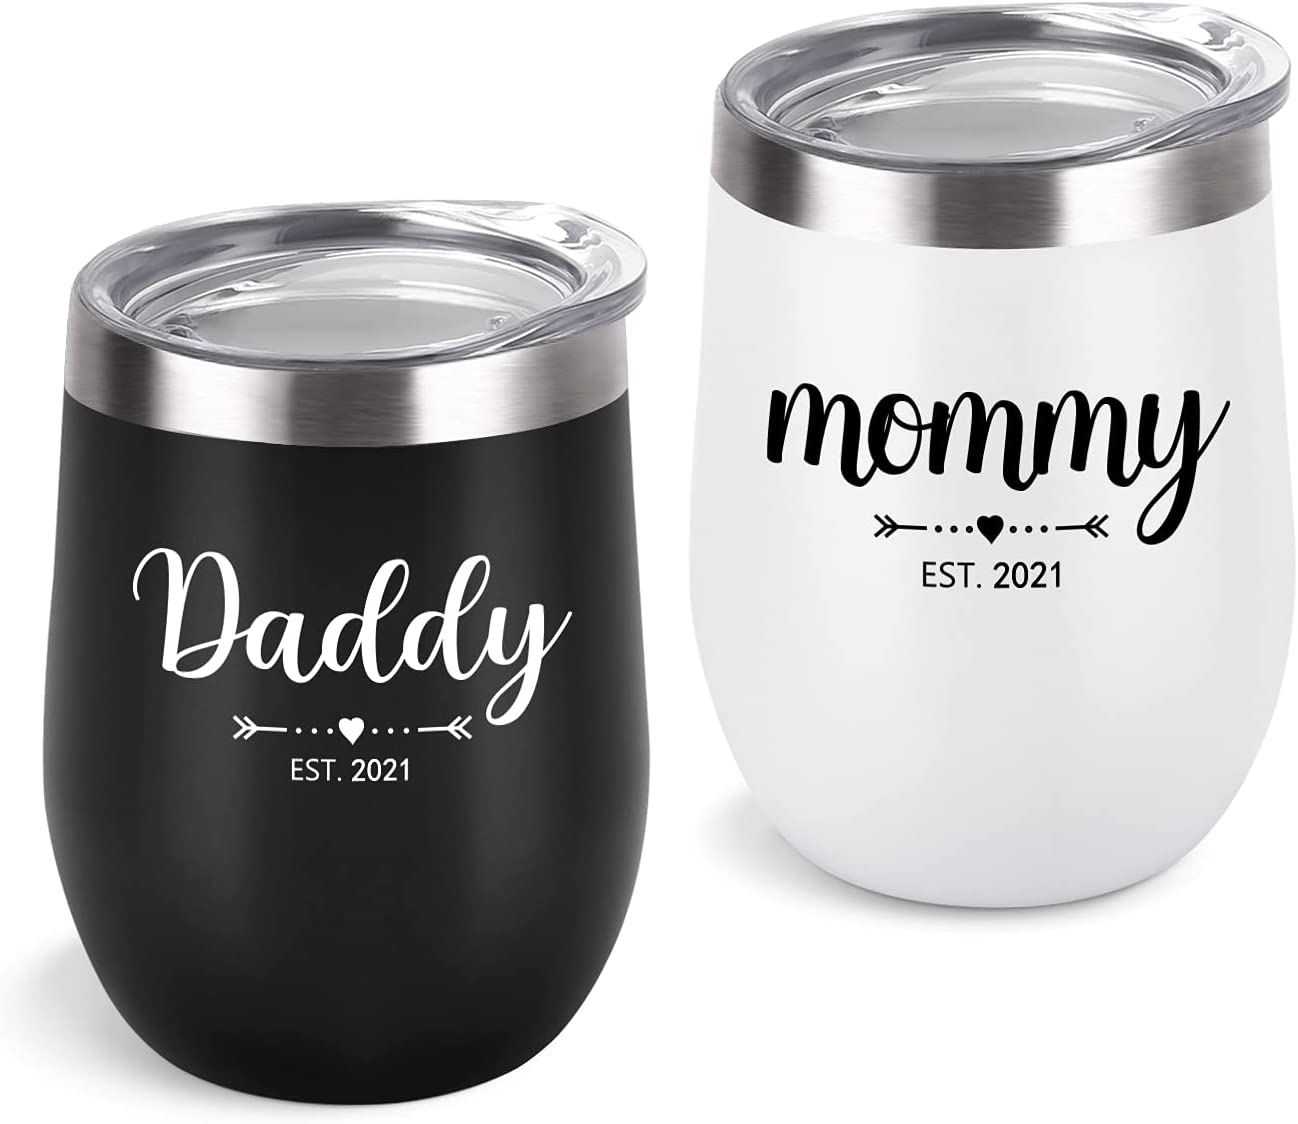 New Parents Tumbler Set, Daddy Mommy Est 2021 Stainless Steel Wine Tumbler with Lid, Dad Mom Gift for Mother's Day Father's Day Birthday New Pregnancy Baby Shower Christmas (12Oz, Black and White)